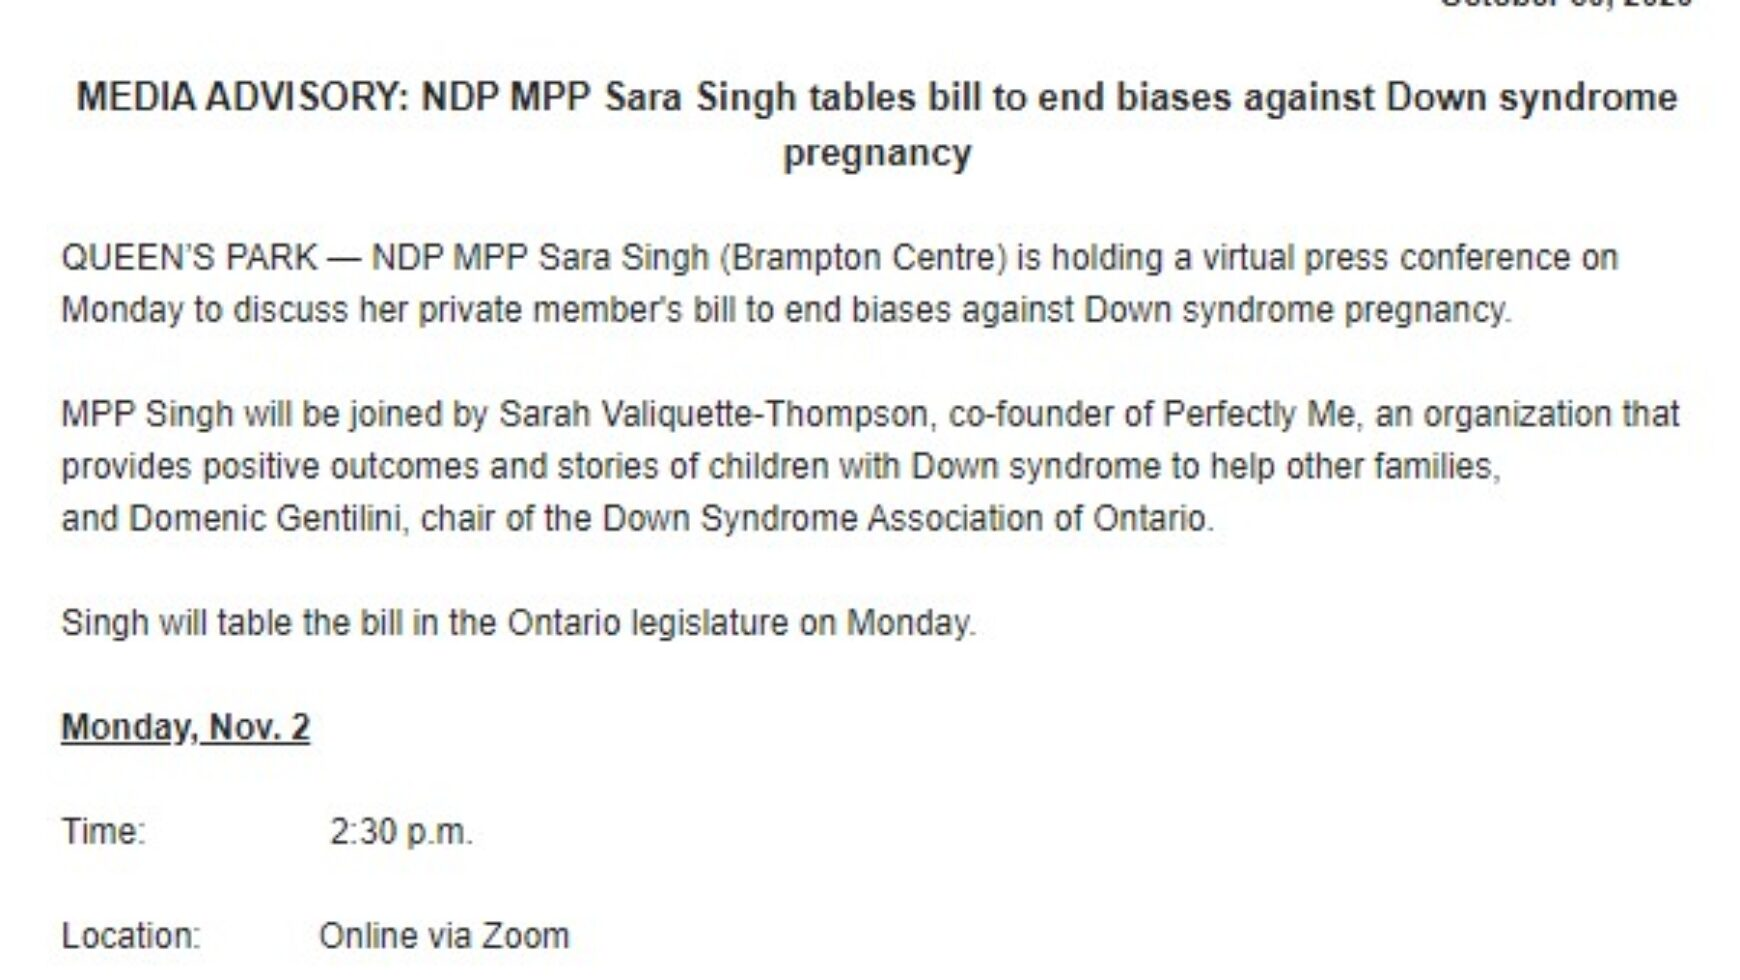 NDP MPP Sara Singh tabling Bill to end biases against Down syndrome pregnancy